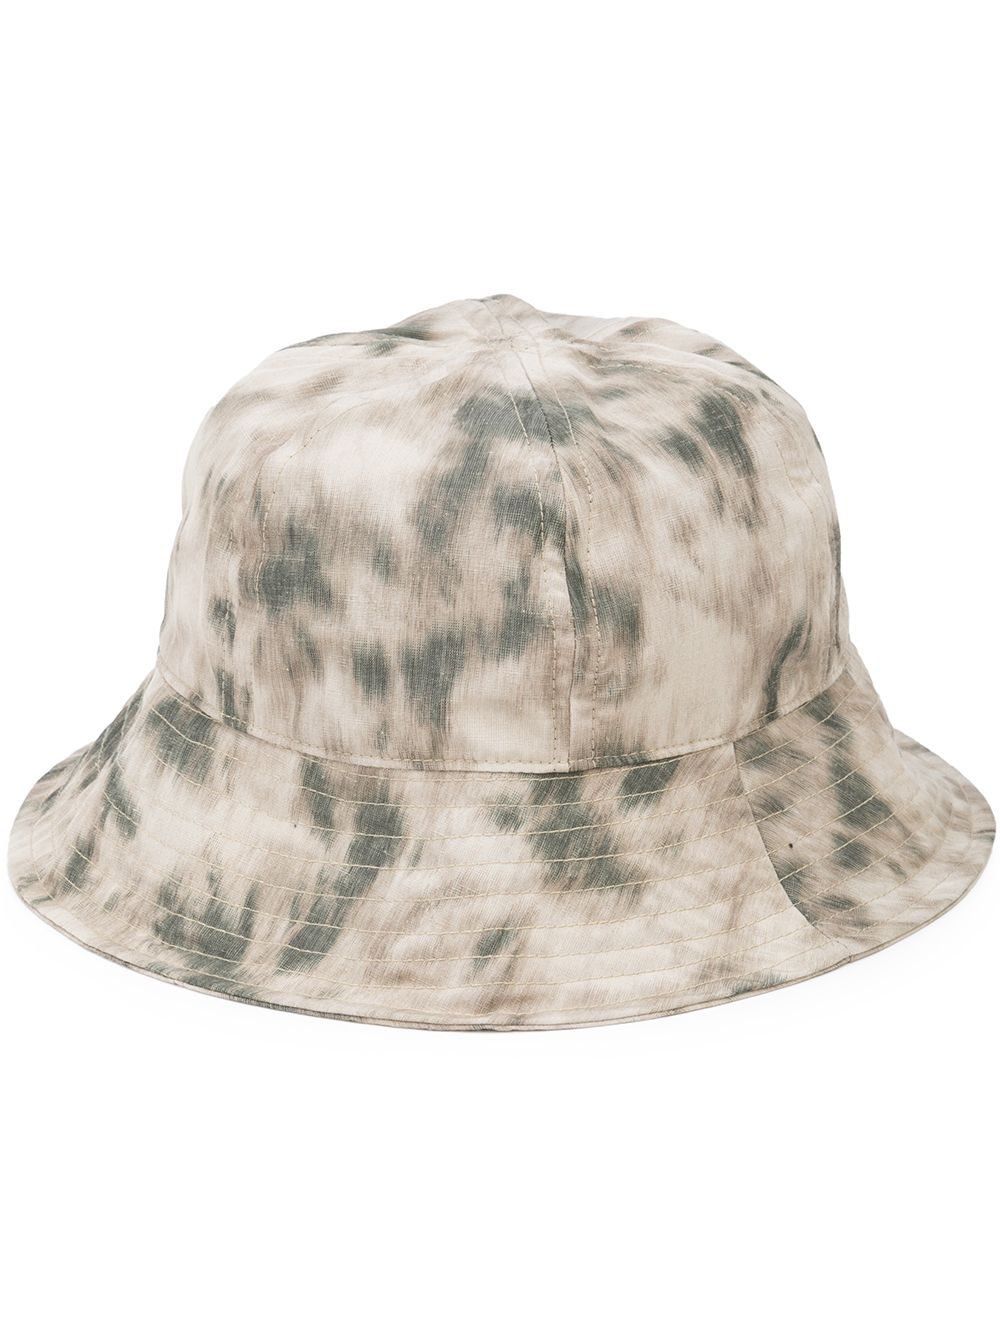 SONG FOR THE MUTE PRINTED MEN BUCKET HAT